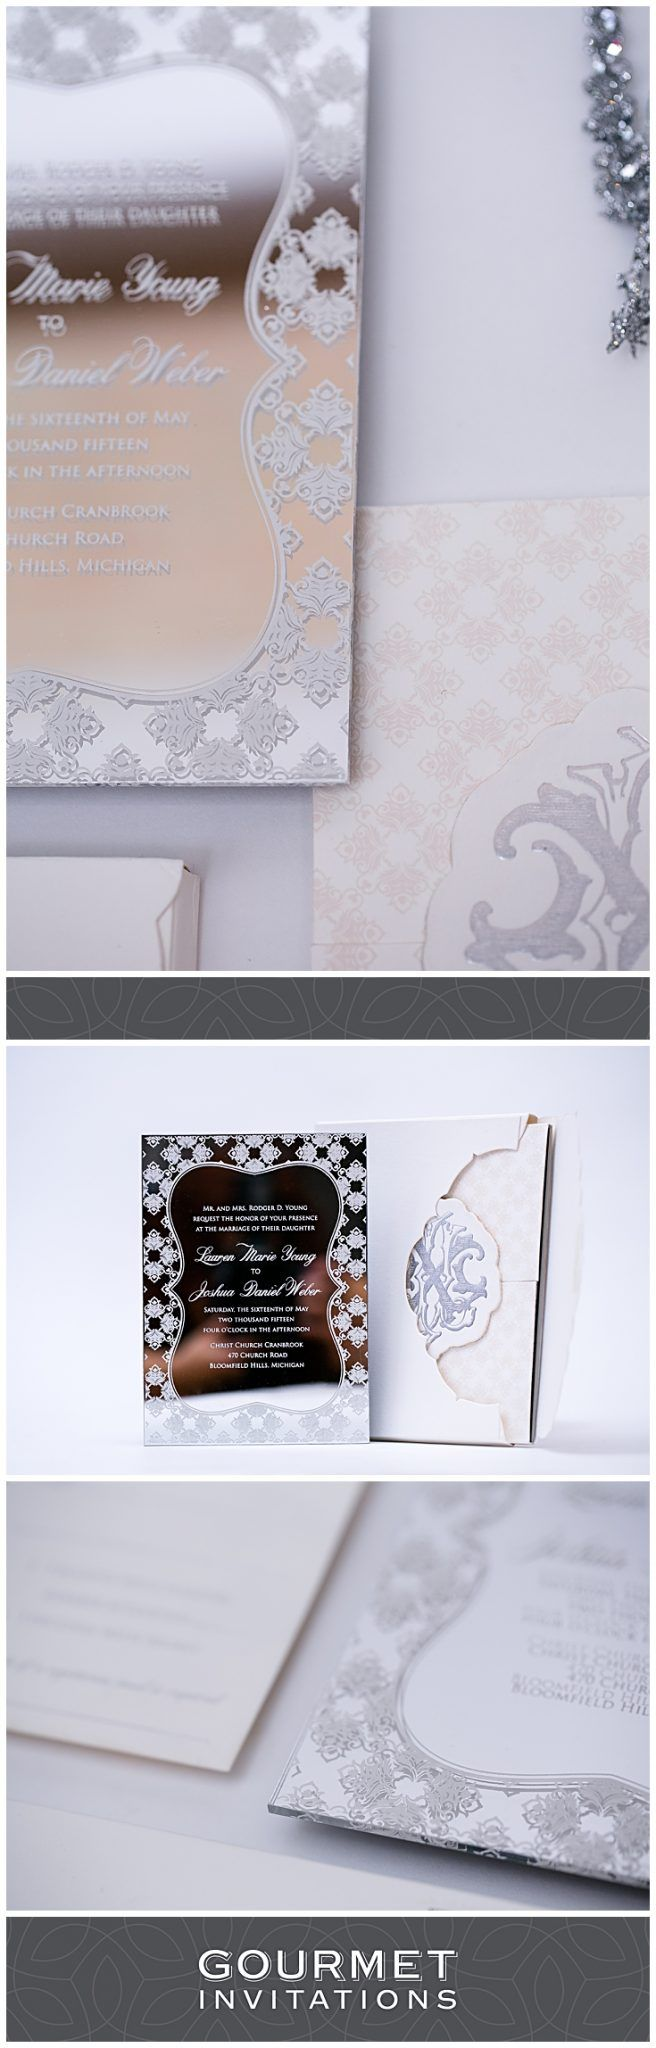 real simple unique wedding invitations%0A Mirror Invitation Ideas For Your Wedding